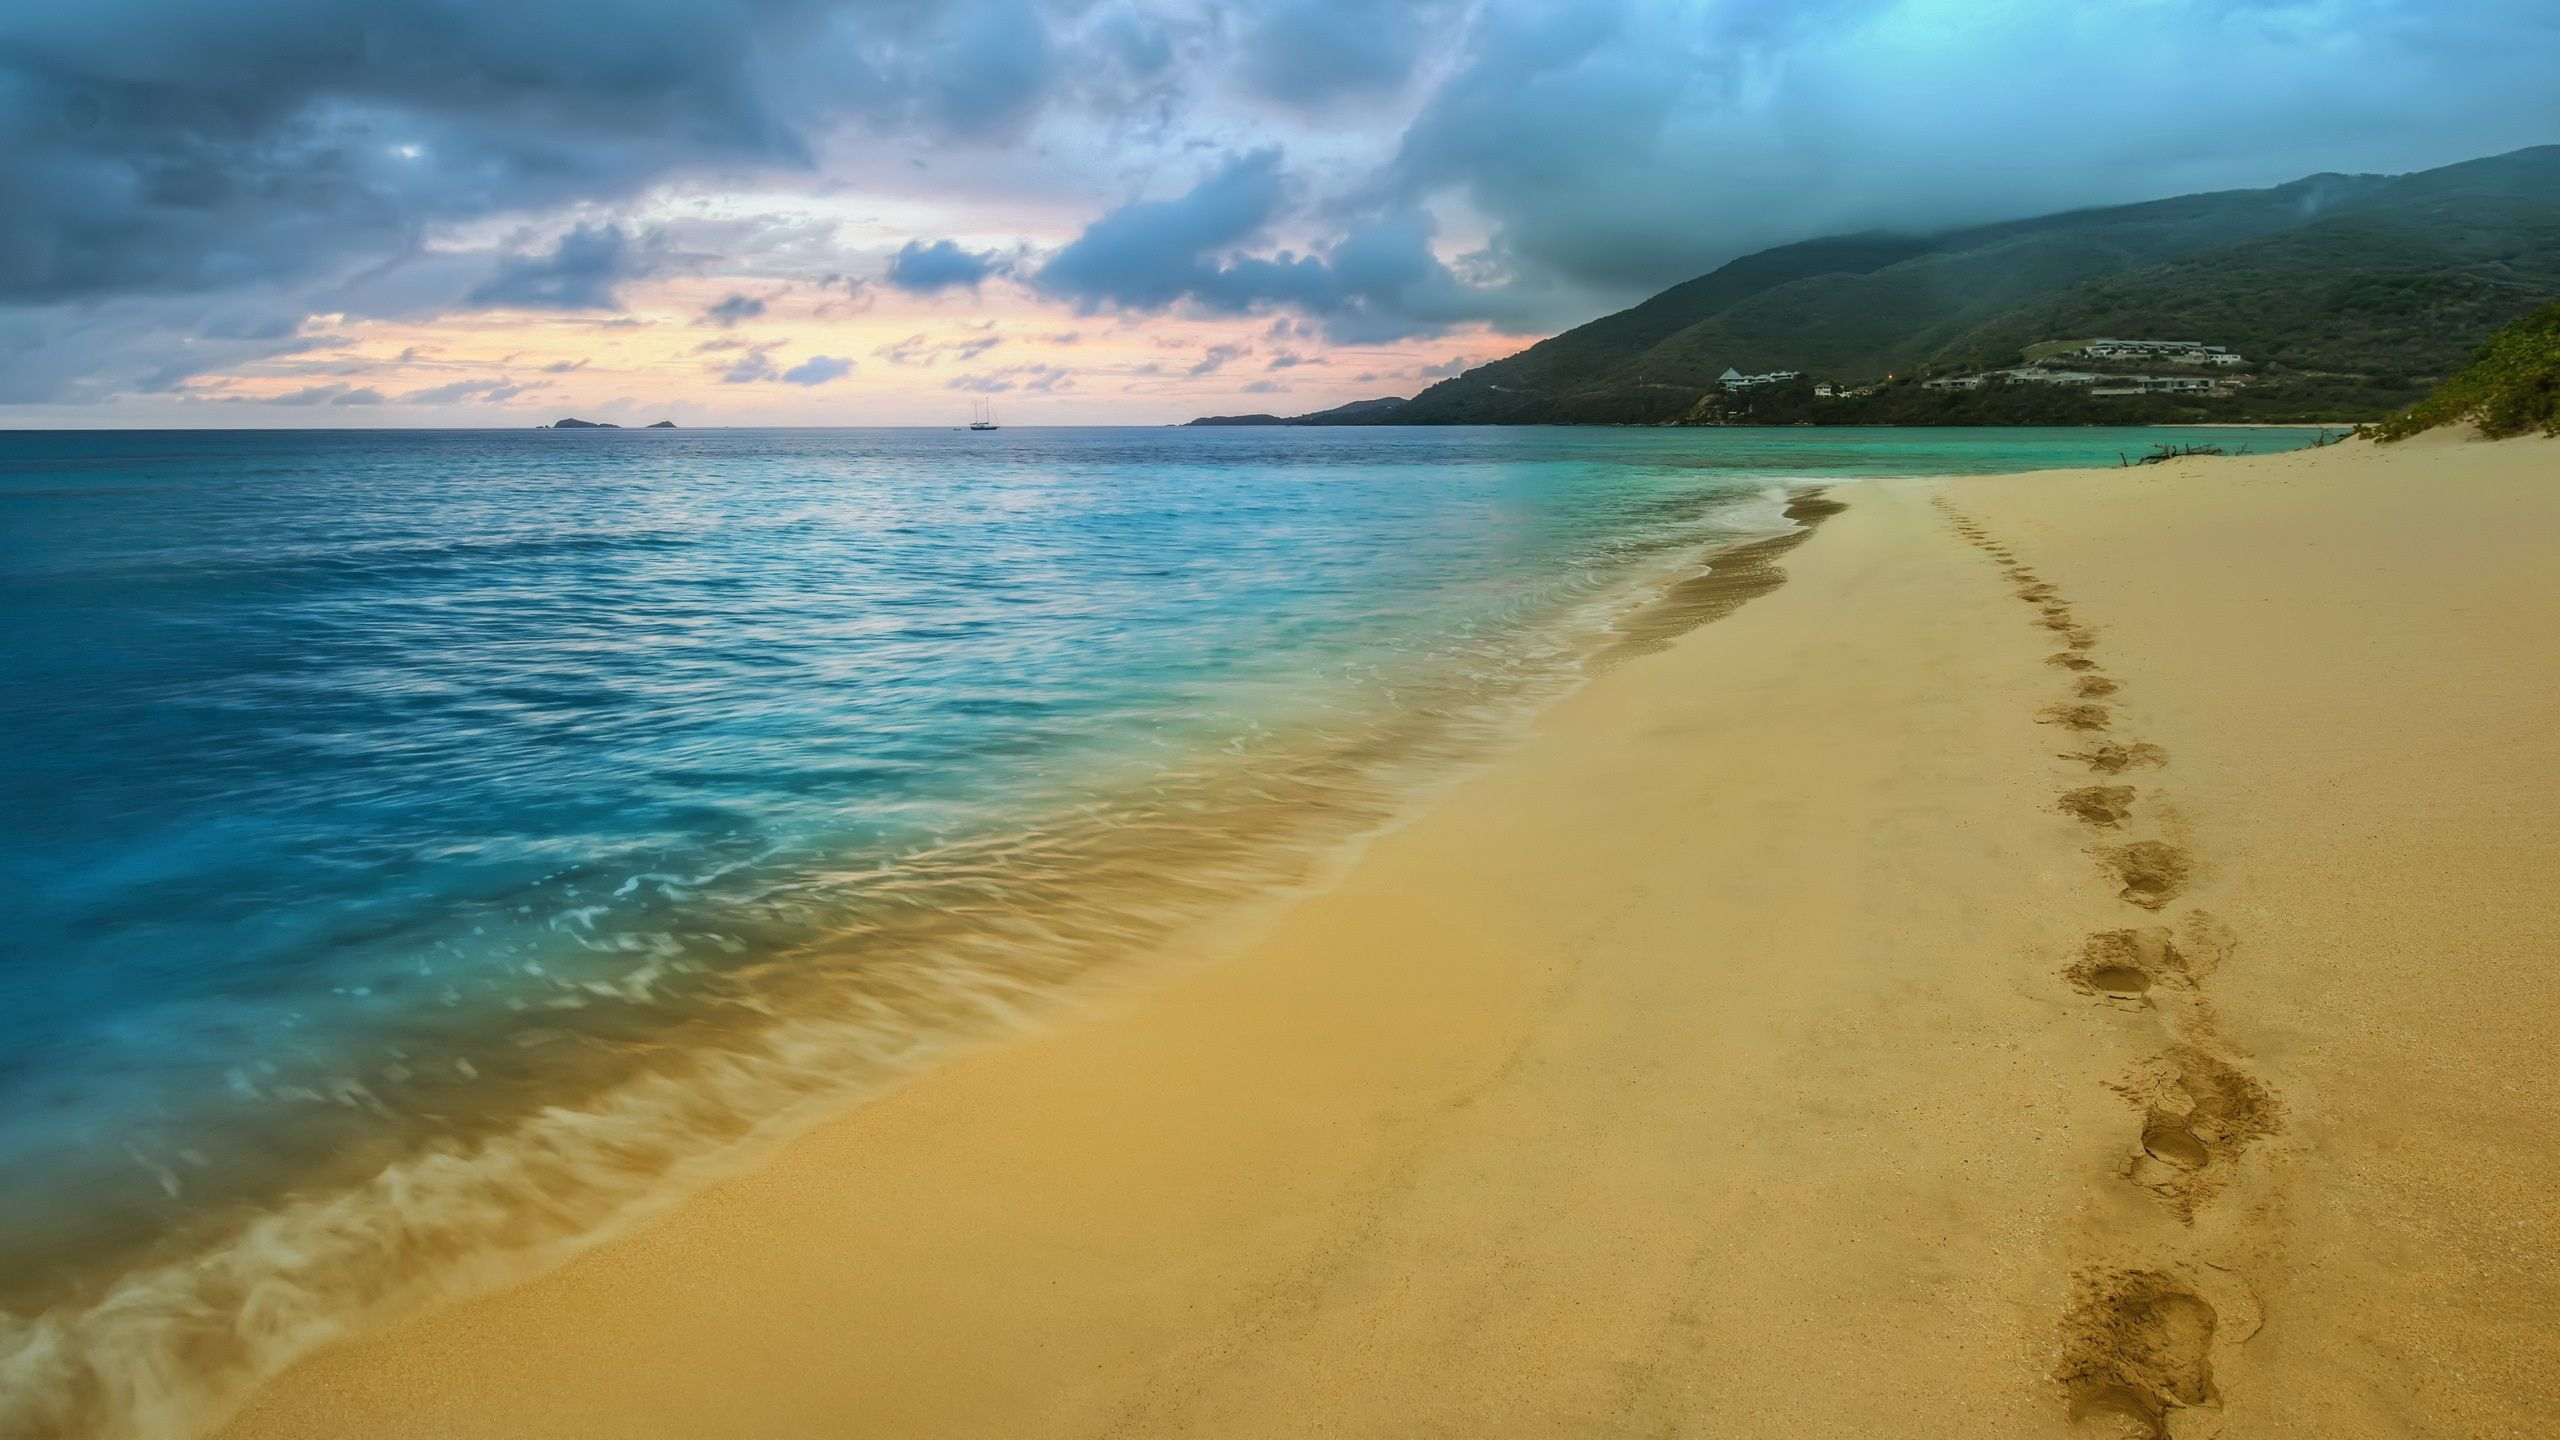 109703 download wallpaper Nature, Sea, Beach, Sand, Coast, Traces, Cloud, Pits screensavers and pictures for free